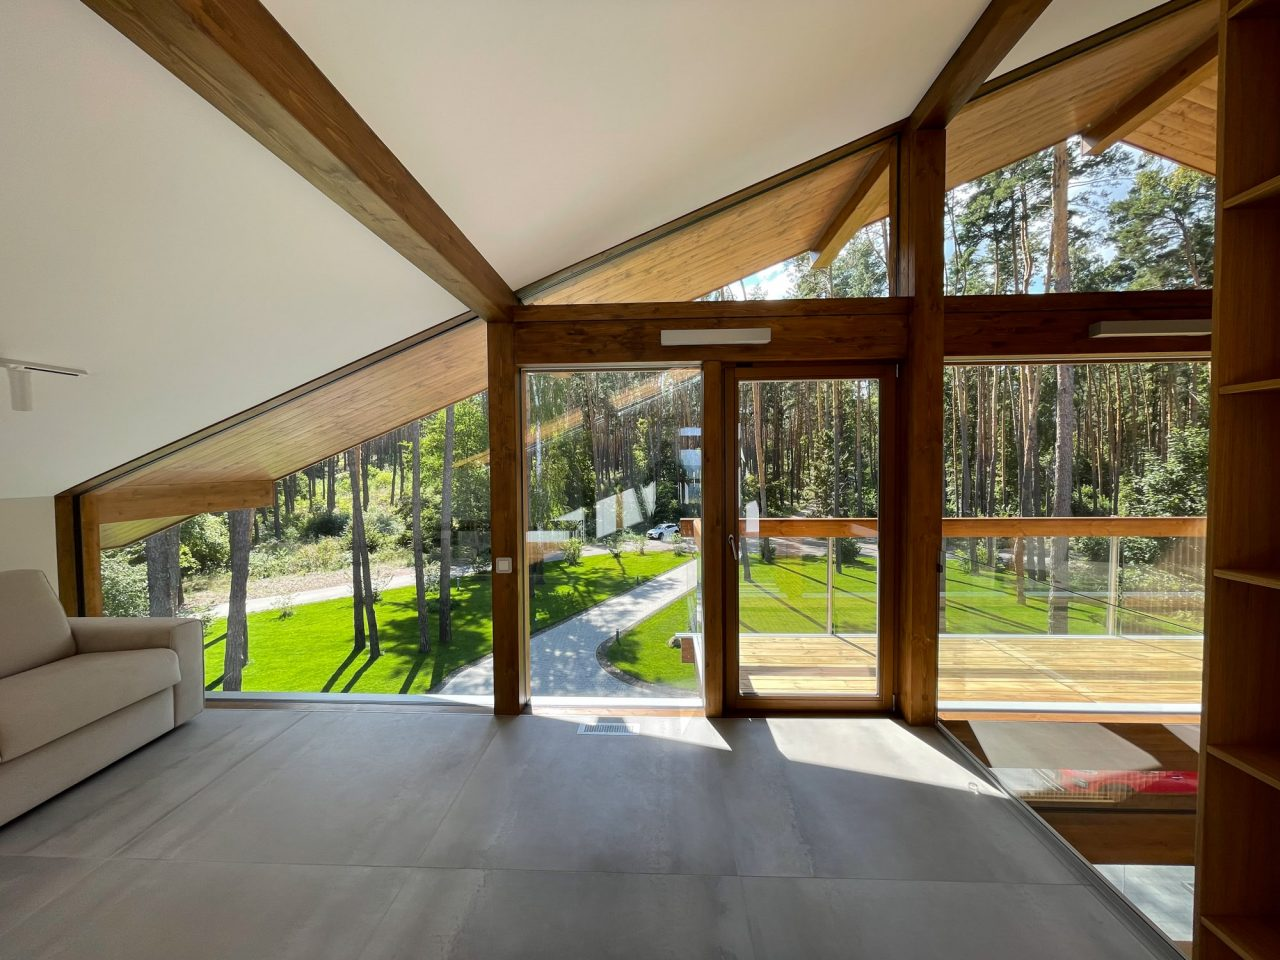 Hlass_house_KAGER - Hurii_16